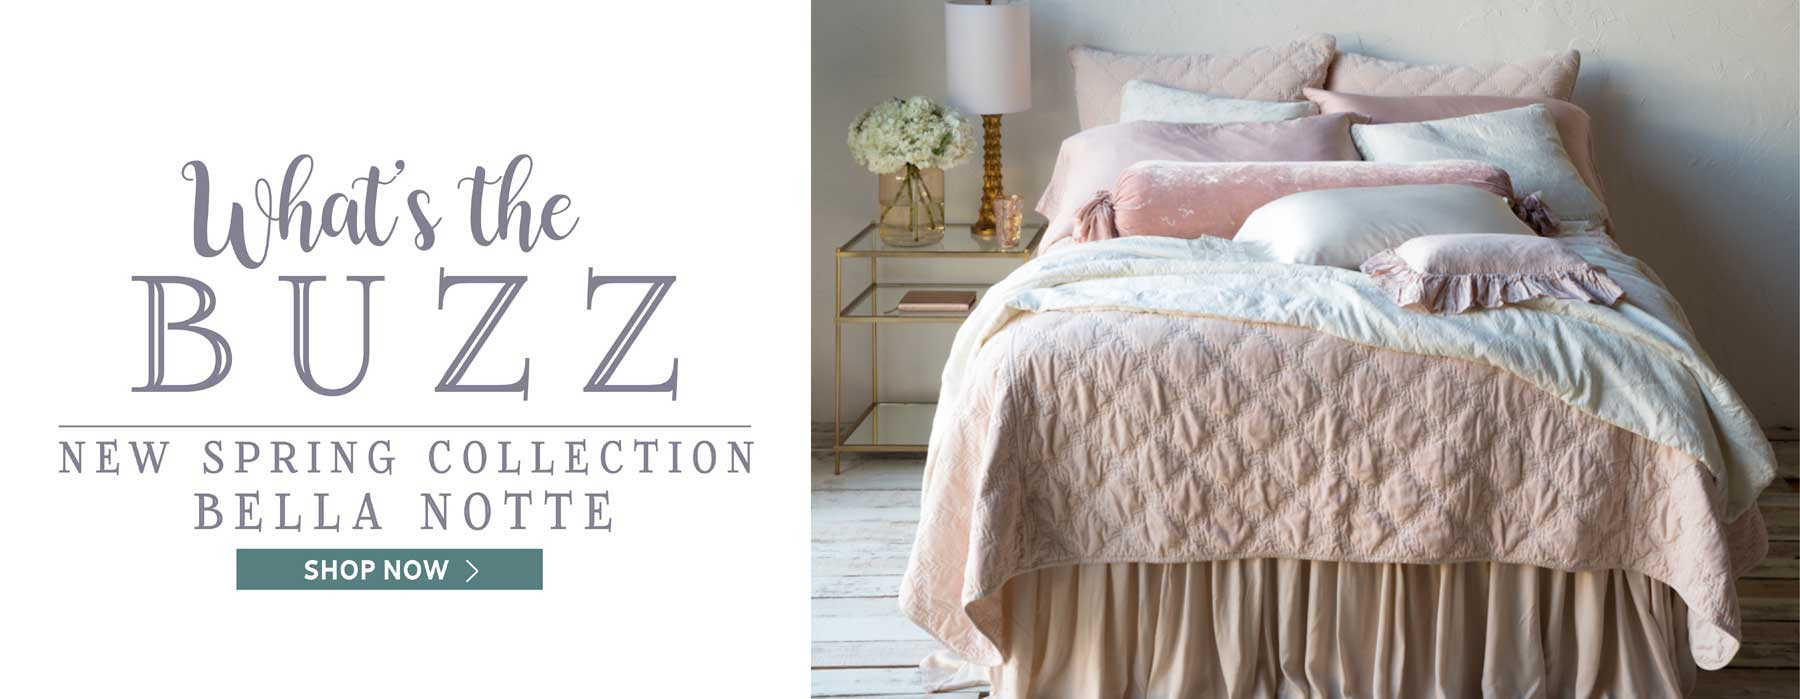 What's the Buzz - New Spring Collection Bella Notte